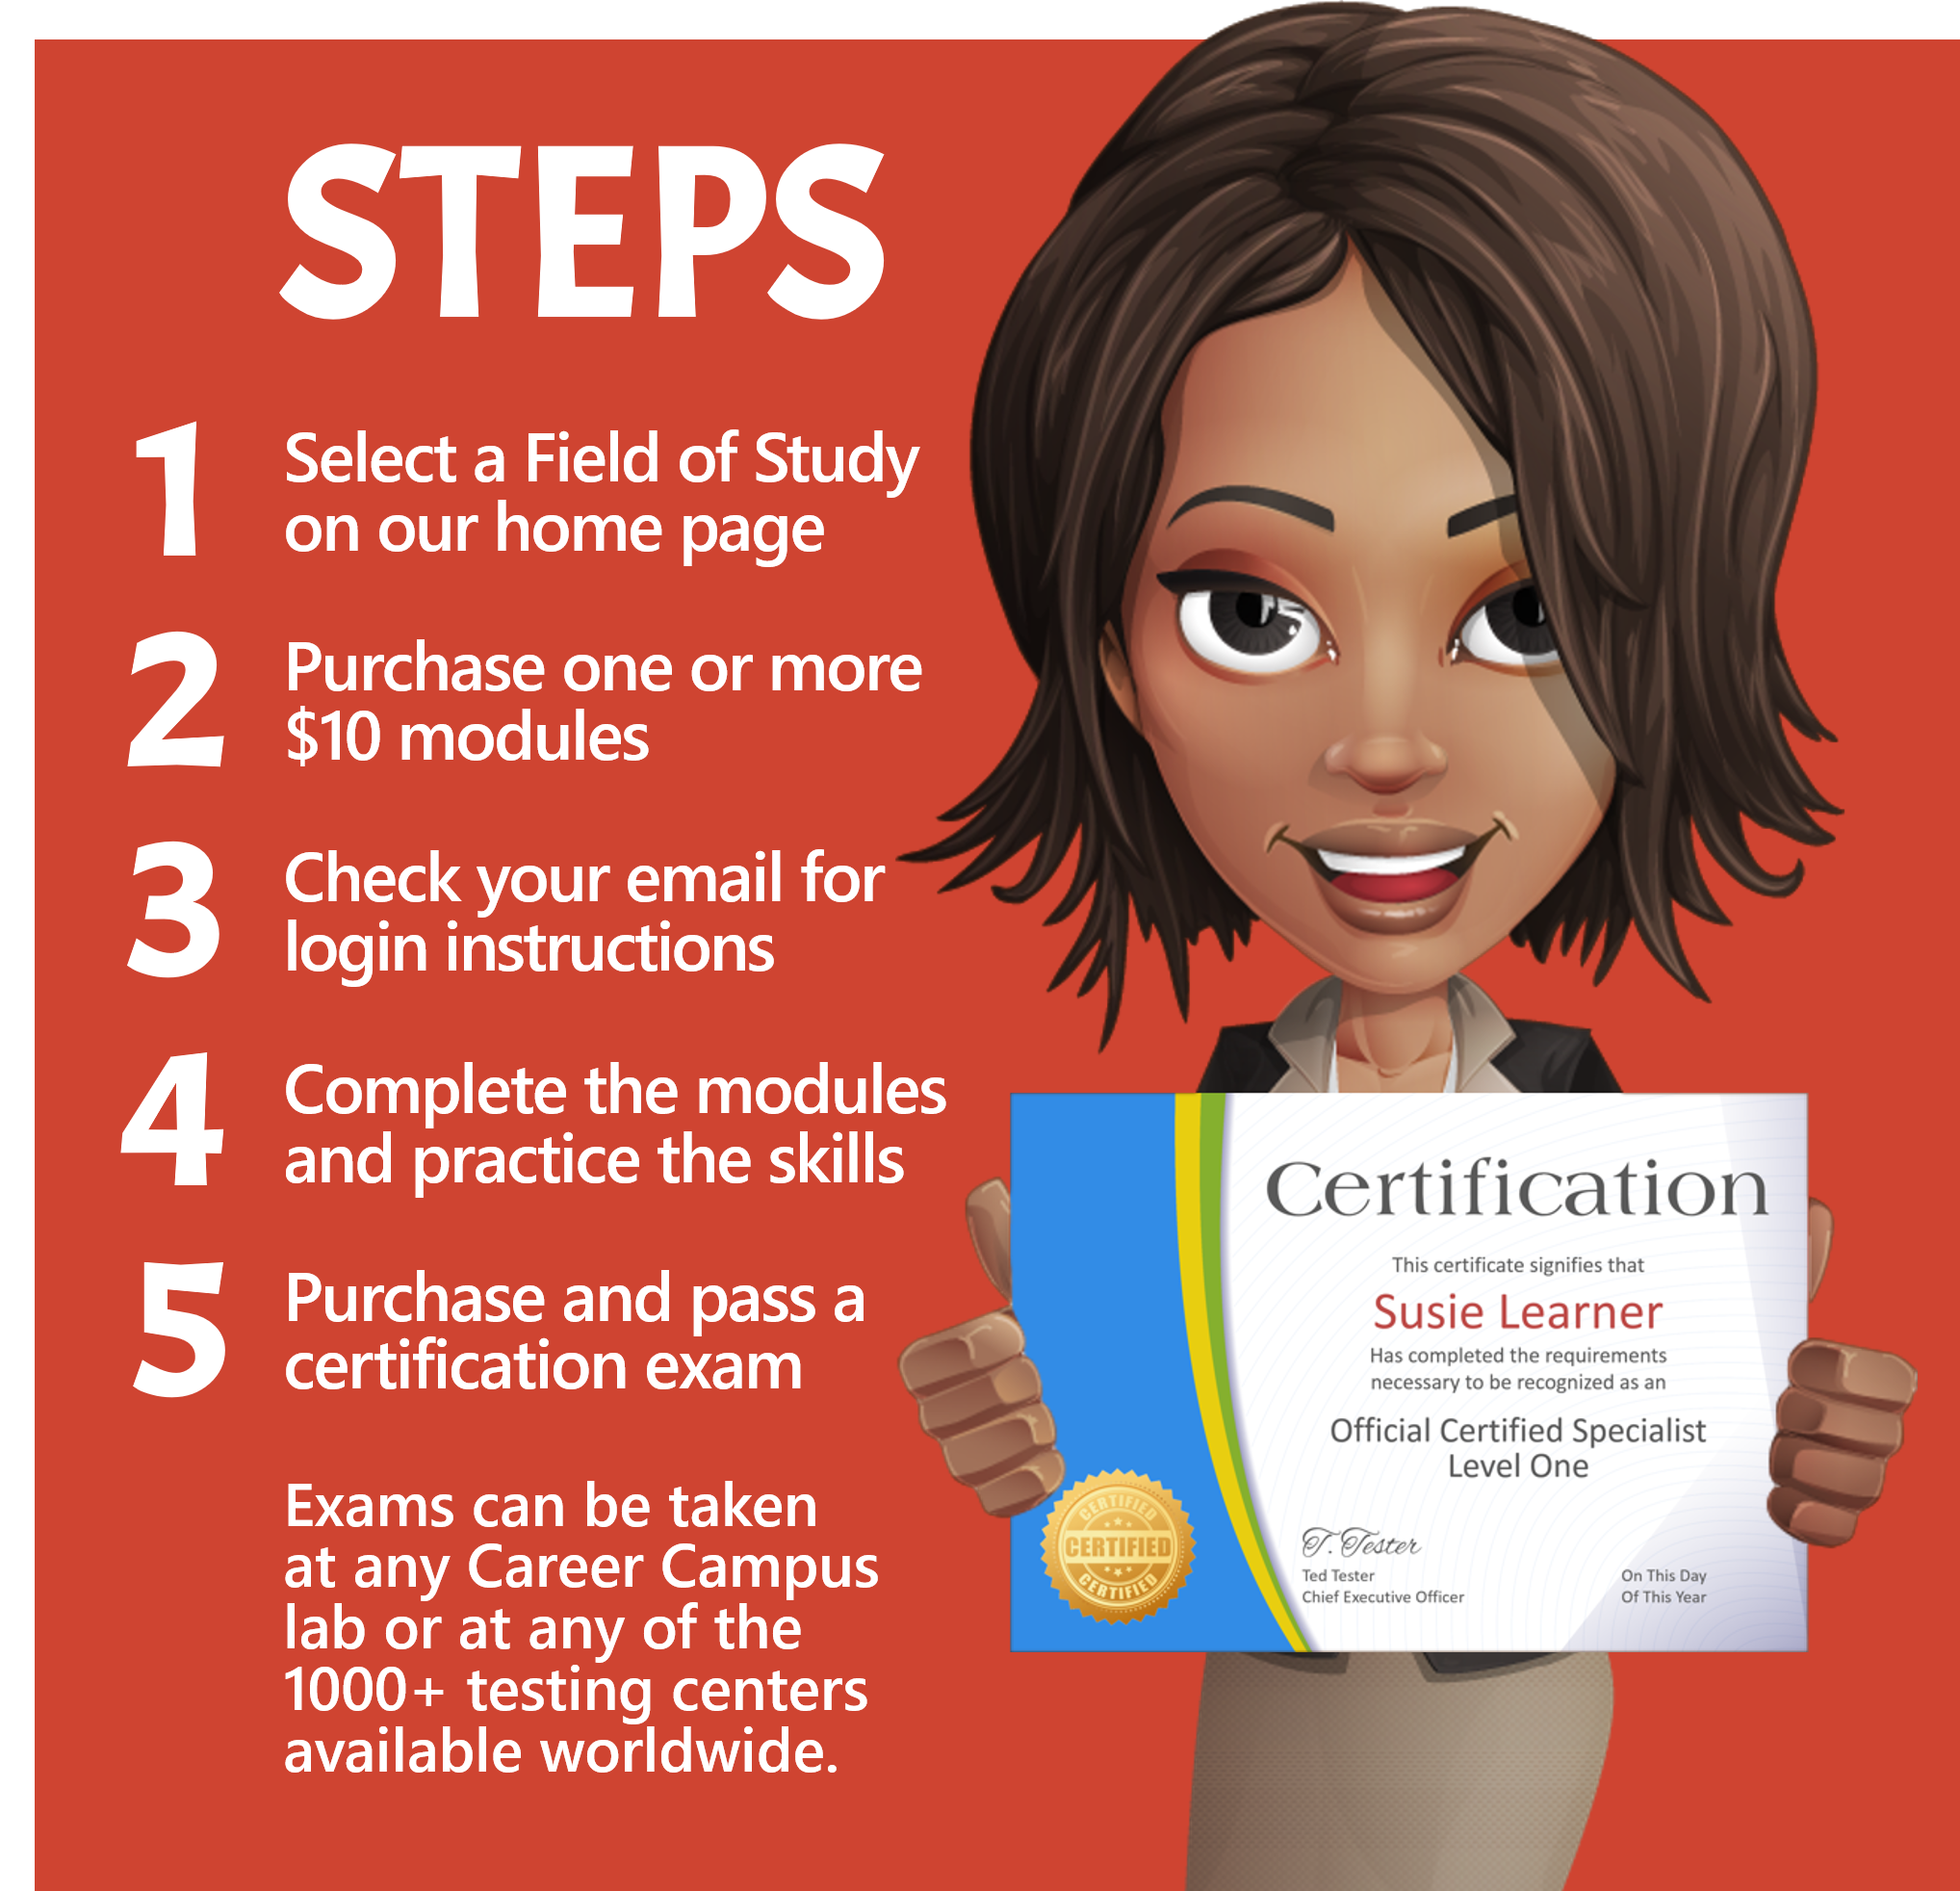 Steps to Certification 1) Select a Field of Study on our home page 2) Purchase one or more $10 modules 3) Check your email for login instructions 4) Complete the modules and practice the skills 5) Purchase and pass a certification exam. Exams can be taken at any Career Campus lab or at any of the 1000+ testing centers available worldwide.